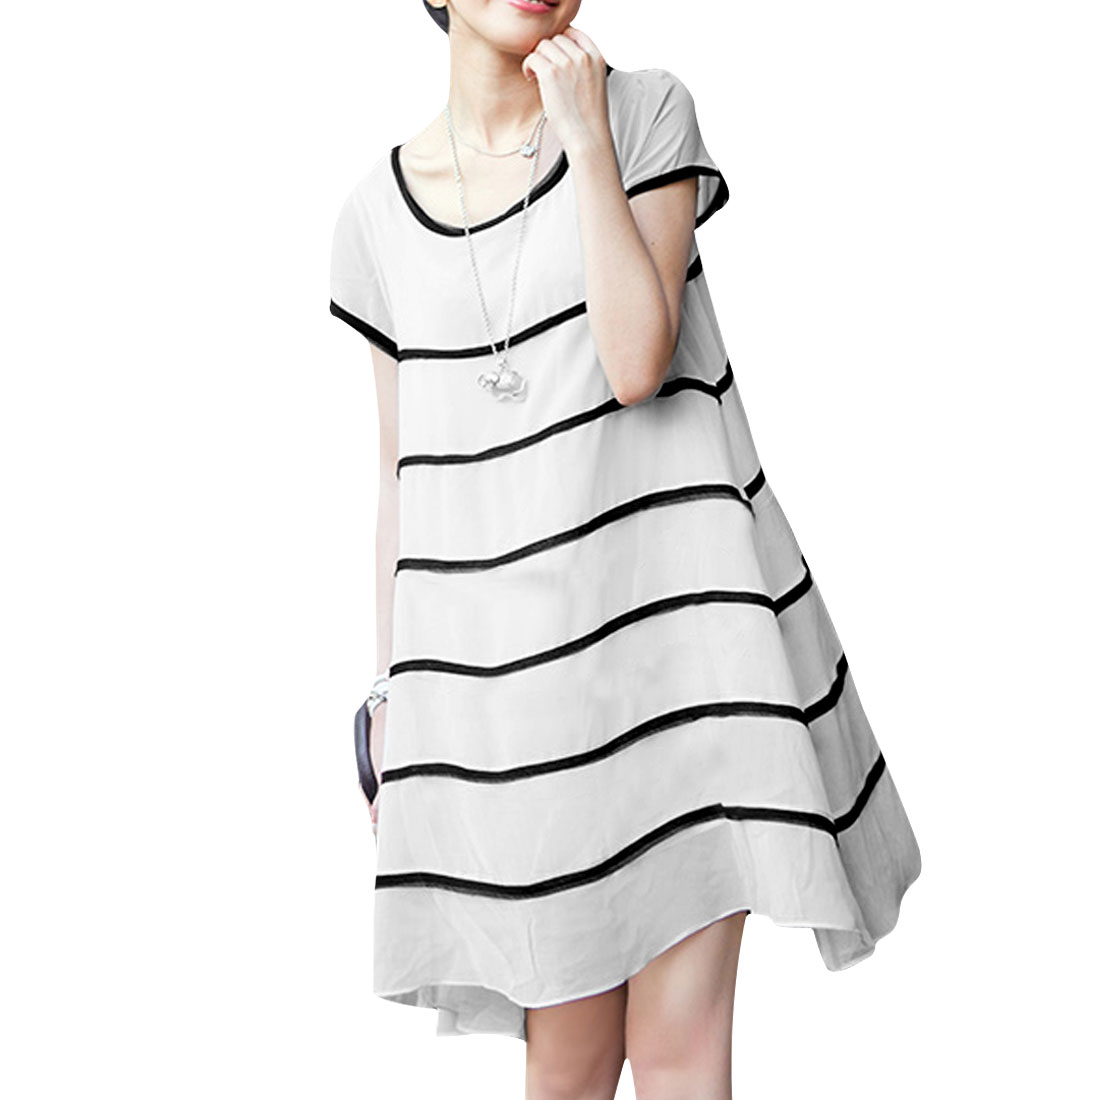 Lady Pullover Scoop Neck Stripes Prints Semi-sheer White Dress XS